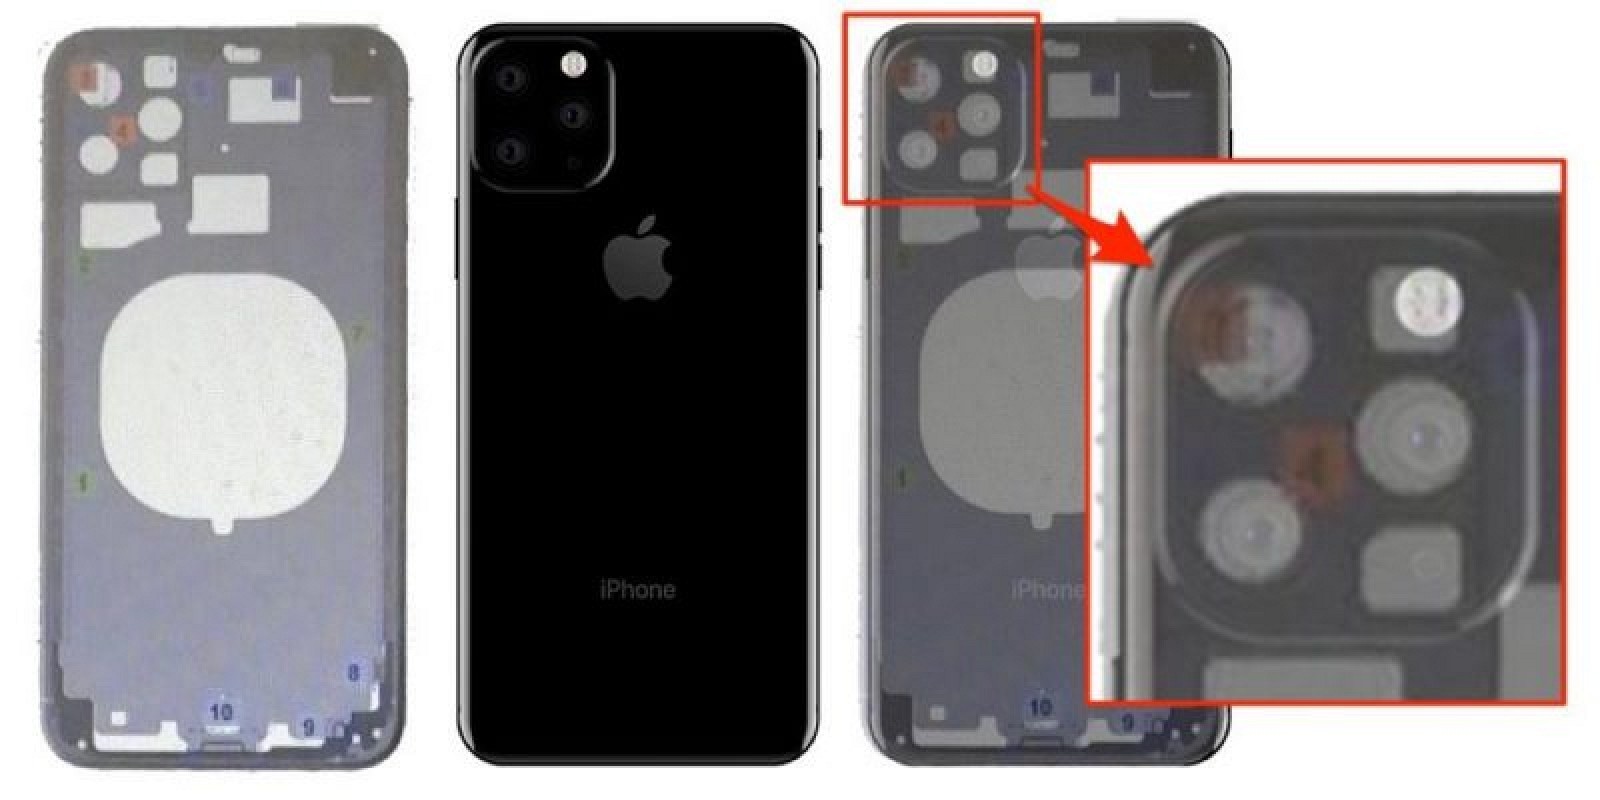 2019-iphone-triple-lens-triangle-onleaks-800x400